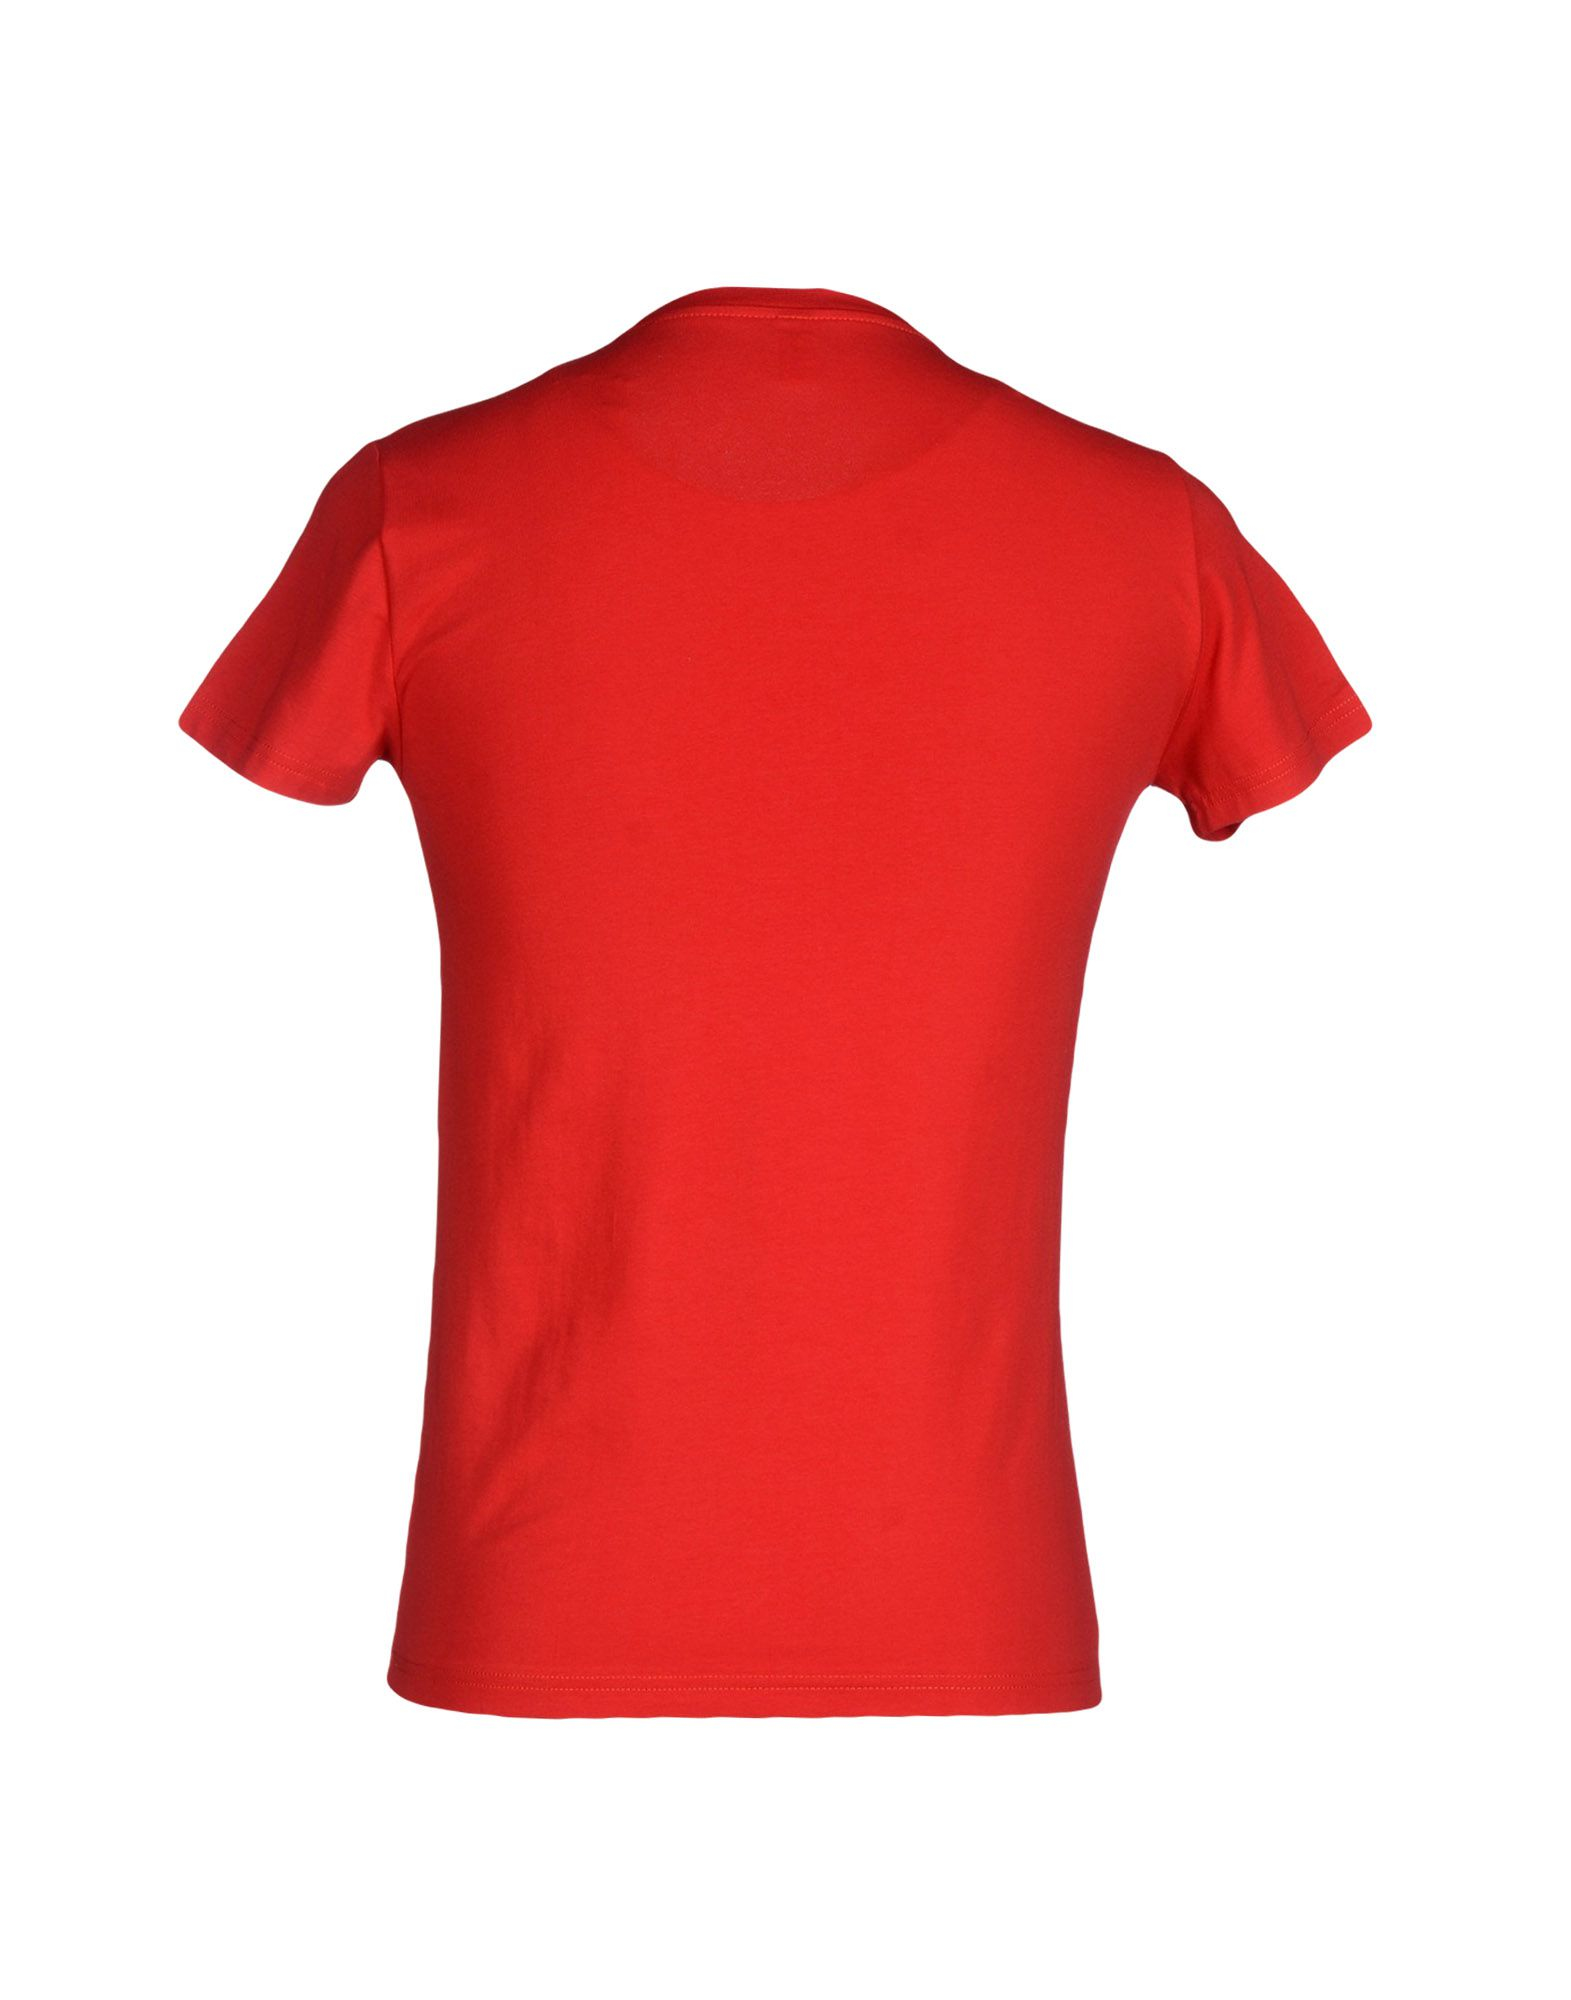 moschino t shirt in red for men lyst. Black Bedroom Furniture Sets. Home Design Ideas